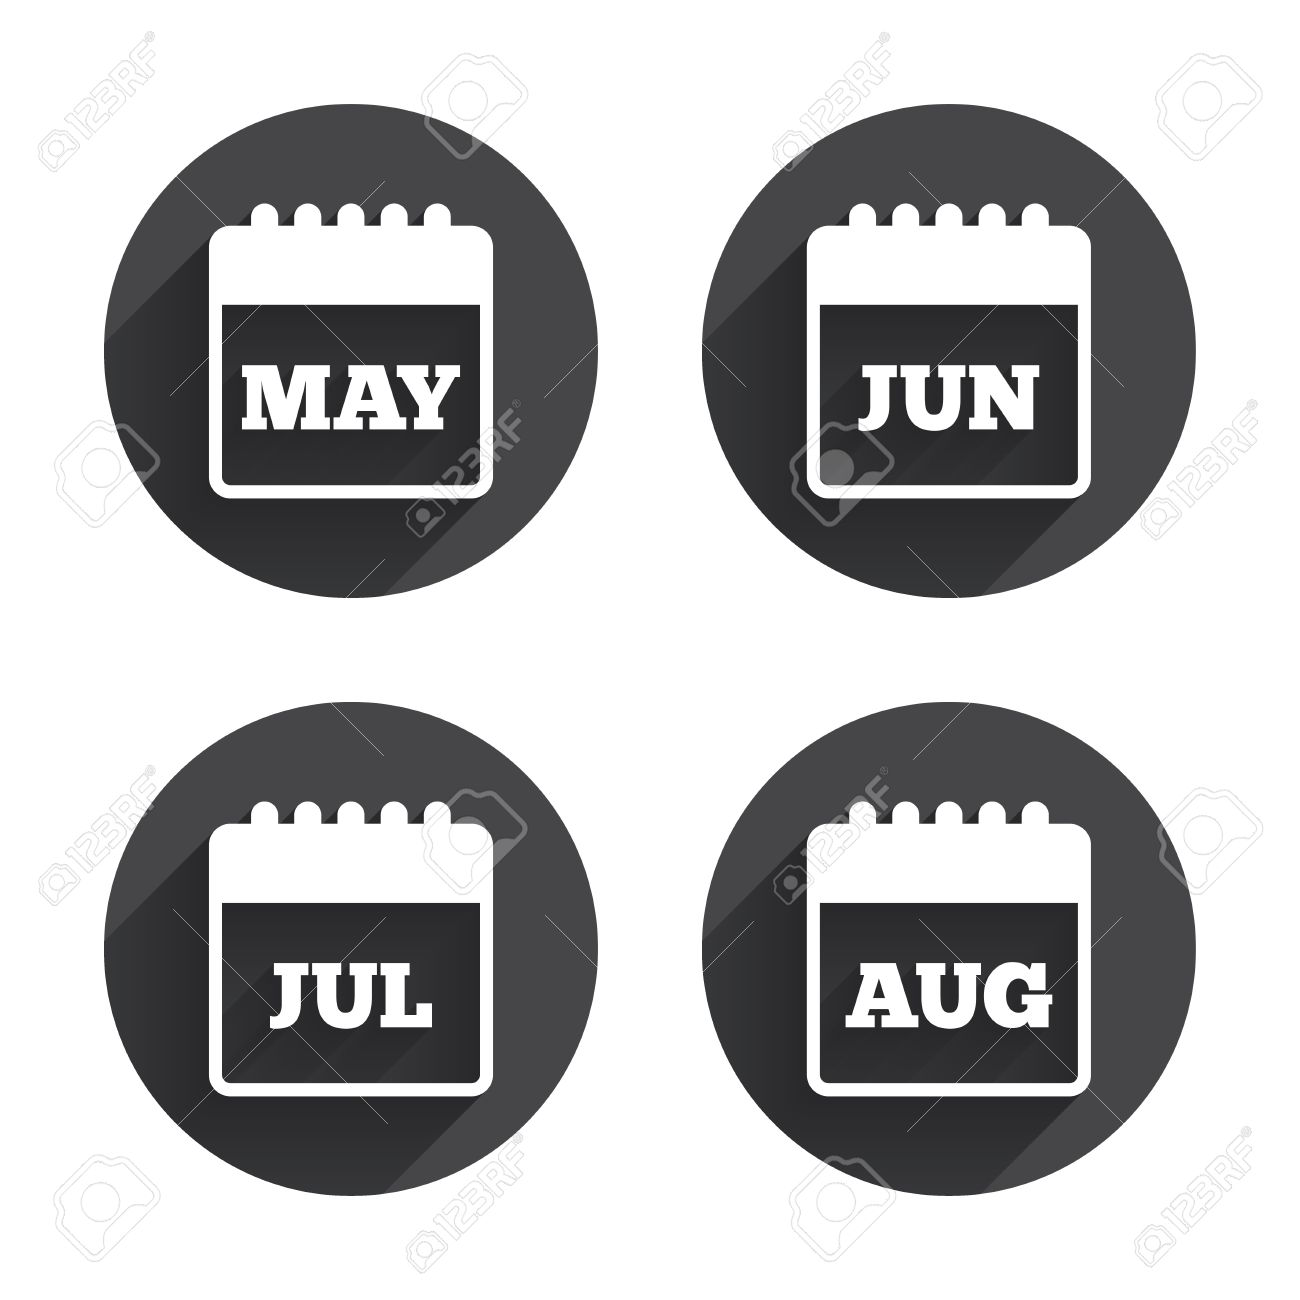 Calendar icons may june july and august month symbols date may june july and august month symbols date or event buycottarizona Image collections